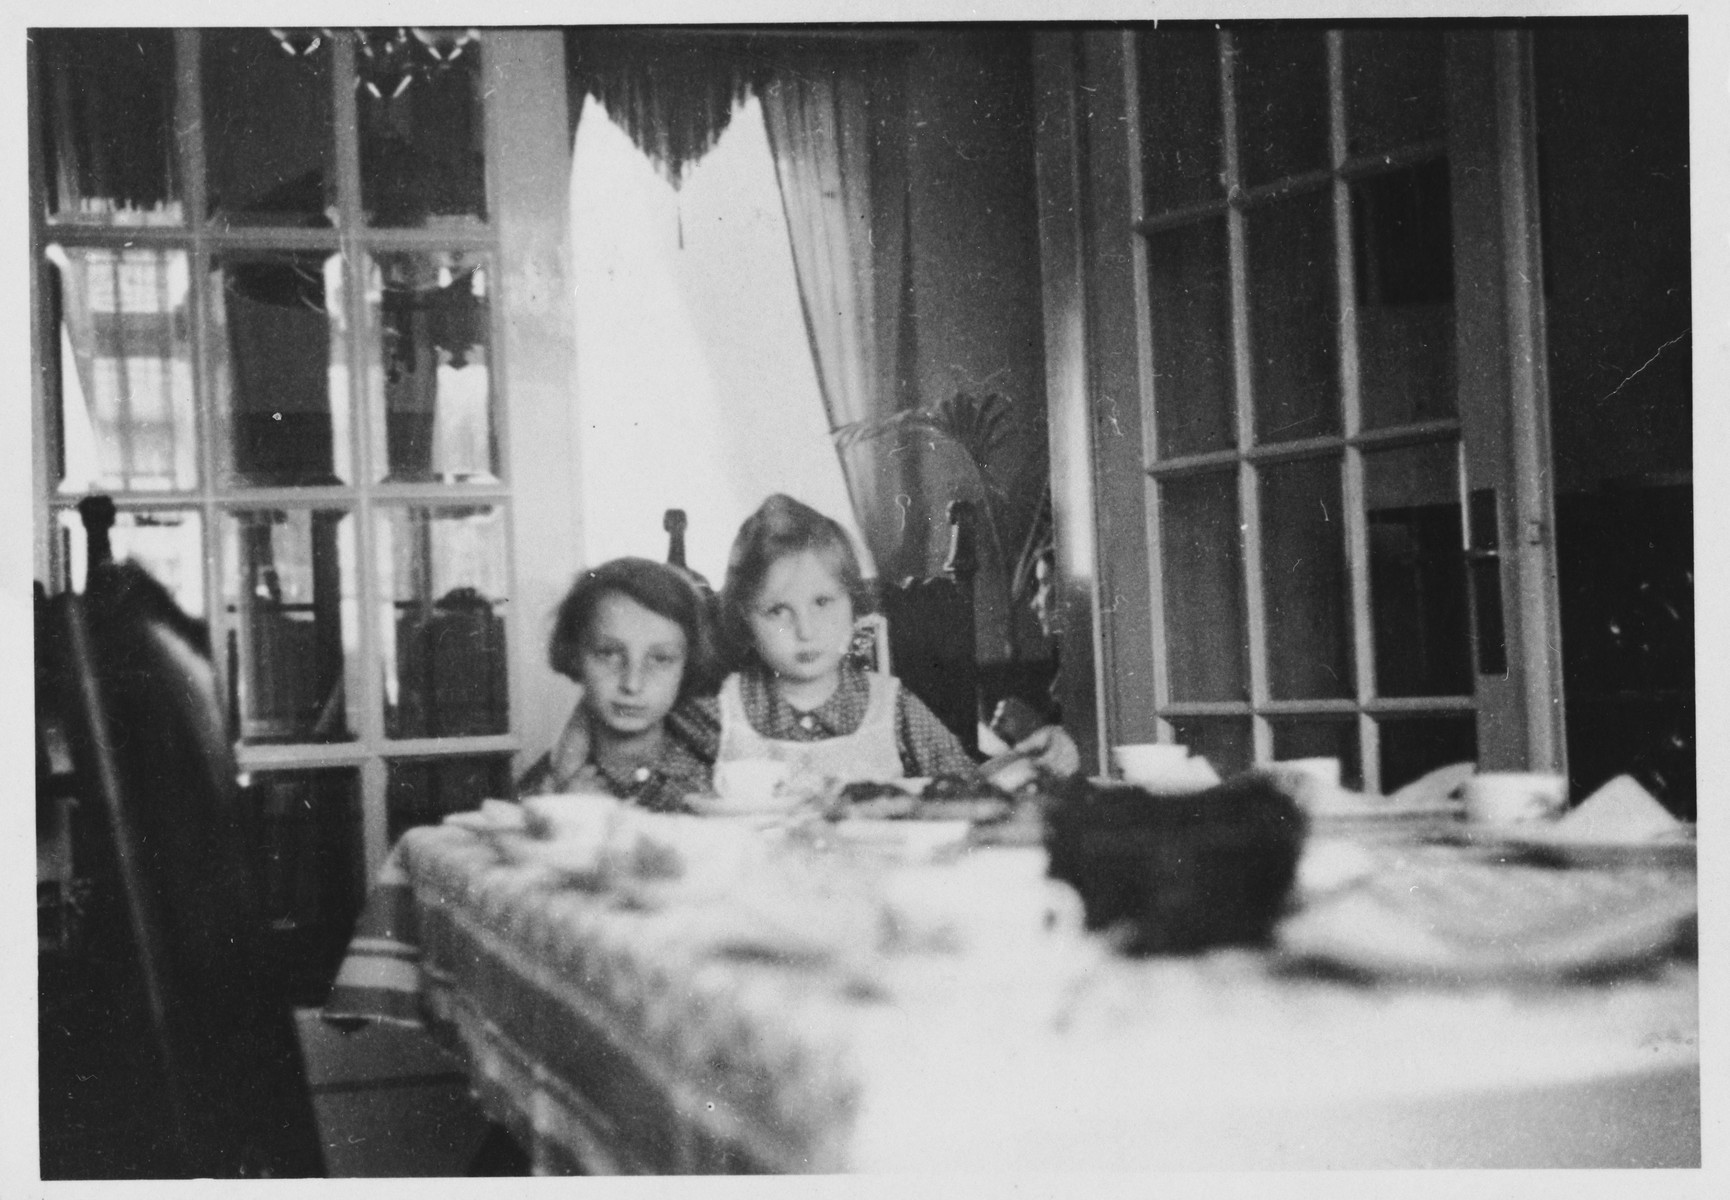 Two Jewish sisters sit together at the dining room table in their parent's farmhouse after hearing about the family's plans to emigrate from Germany.  Pictured are Gisela and Inge Berg.